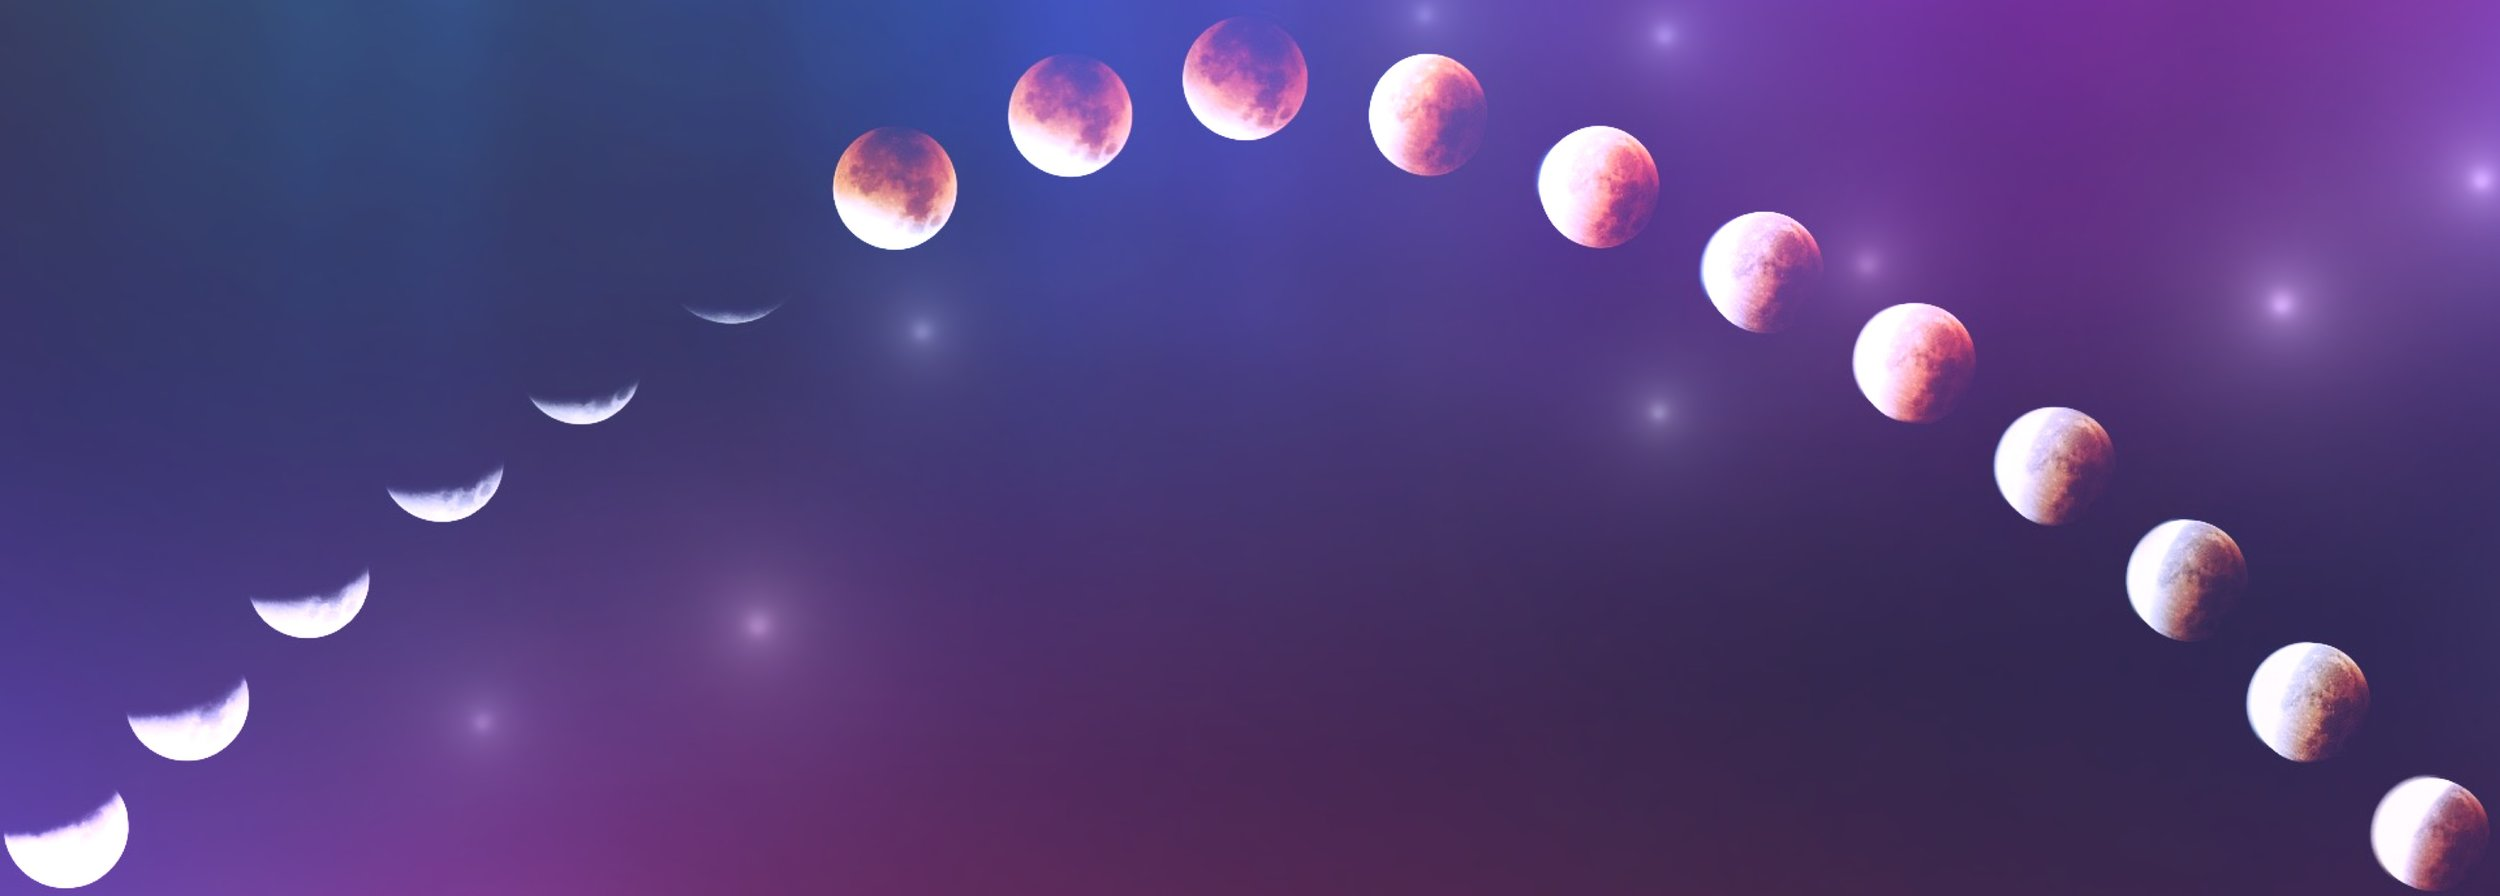 Happy Full Supermoon & Lunar Eclipse! -